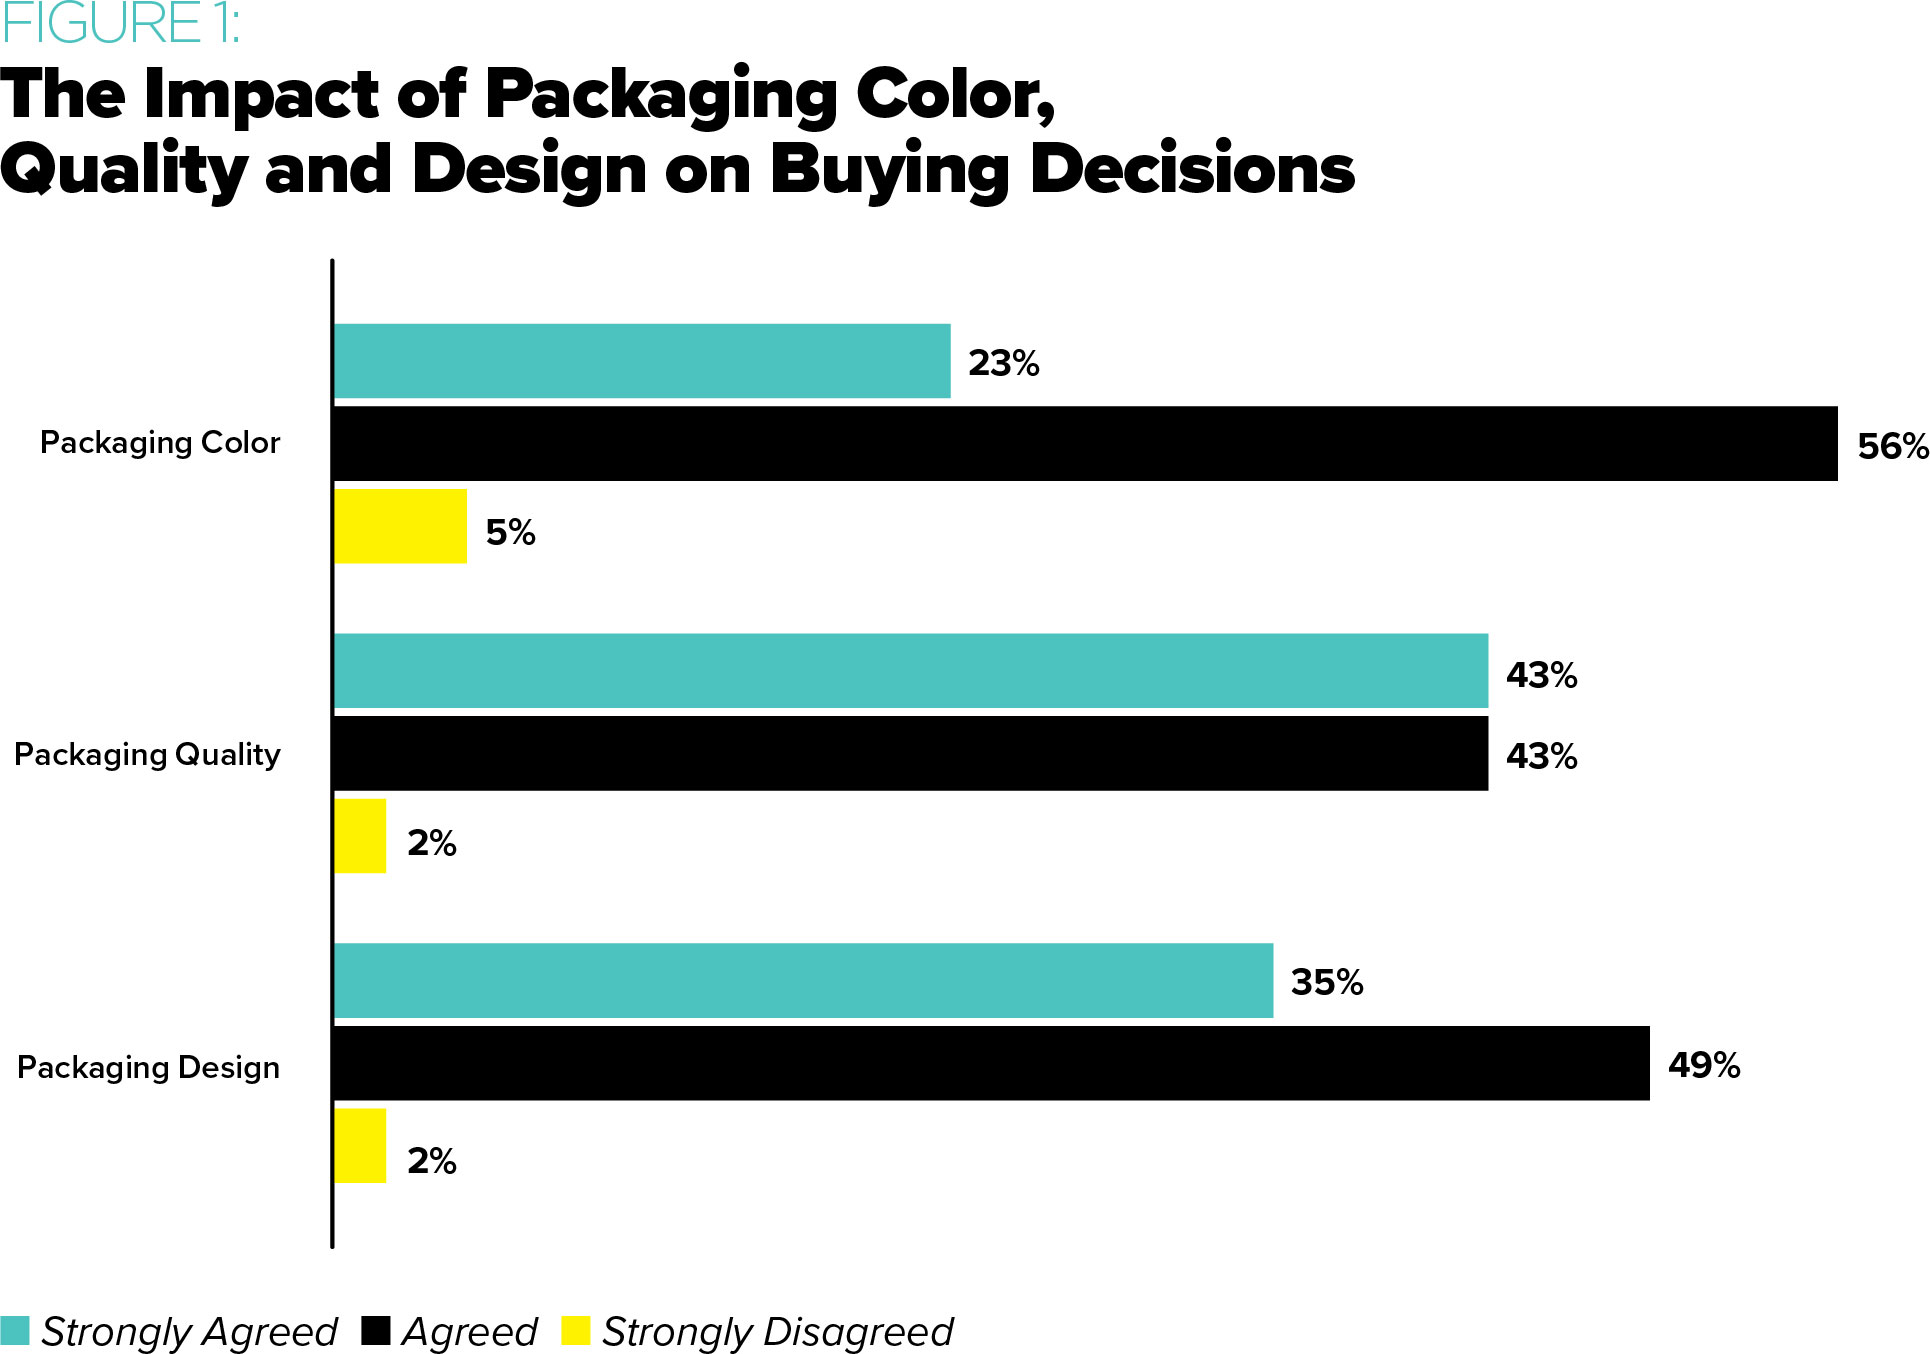 The Impact of Packaging Color, Quality and Design on Buying Decisions